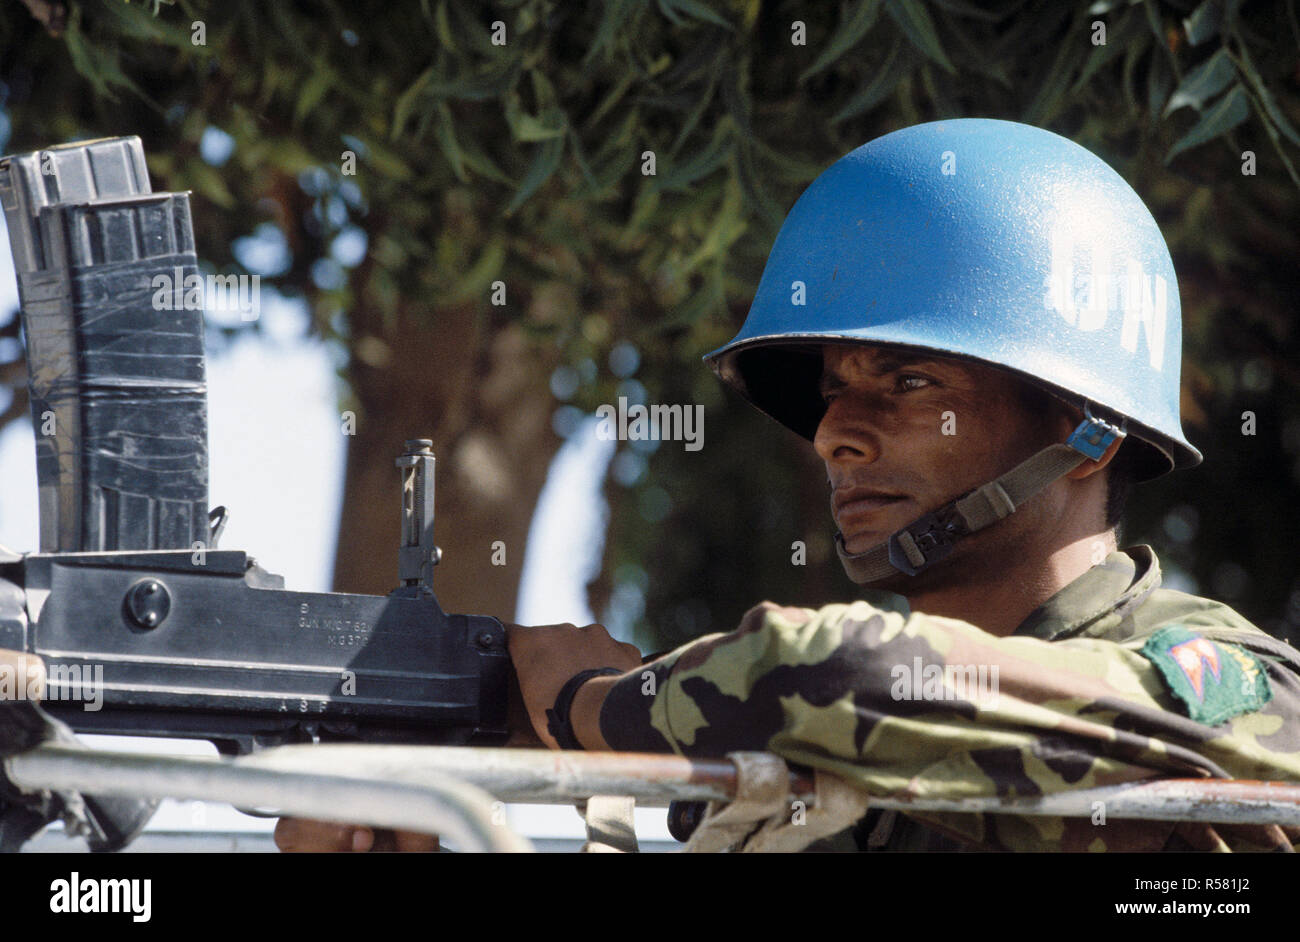 1993 - A member of the Nepalese Quick Reactionary Force (QRF) in Mogadishu Somalia stands ready at his weapon.  The QRF provides foot patrols and guards convoys of United Nations staff members going to their homes. - Stock Image